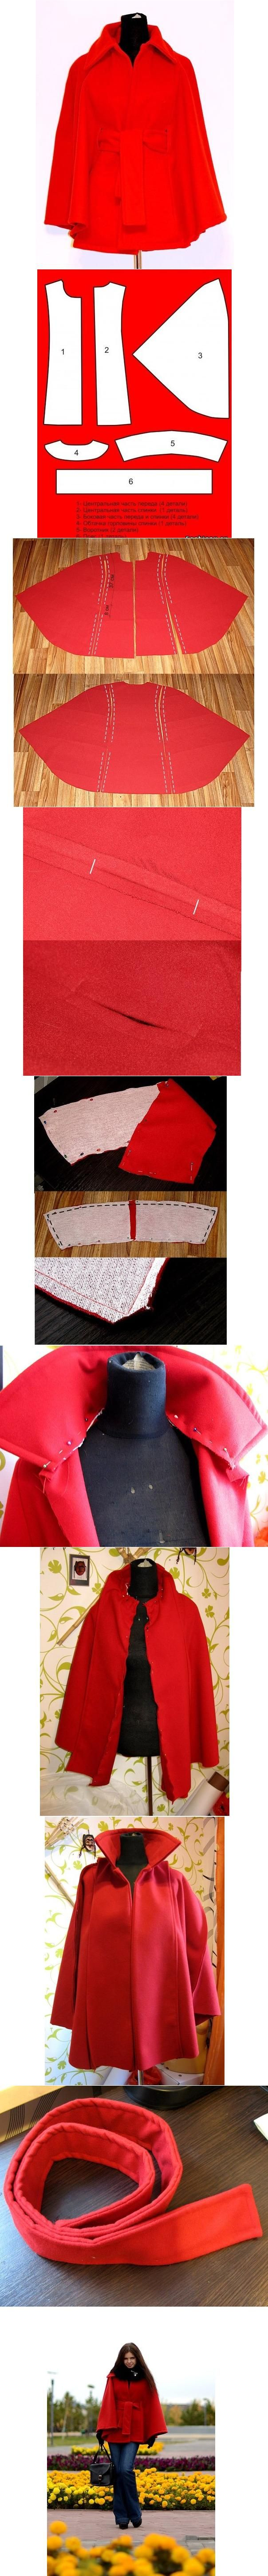 DIY Fashion Cape - Original directions are in a foreign language, but there is a translator on this site. Even in English, though, the directions are not real good, but the cape is so beautiful I just had to pin it to this board.